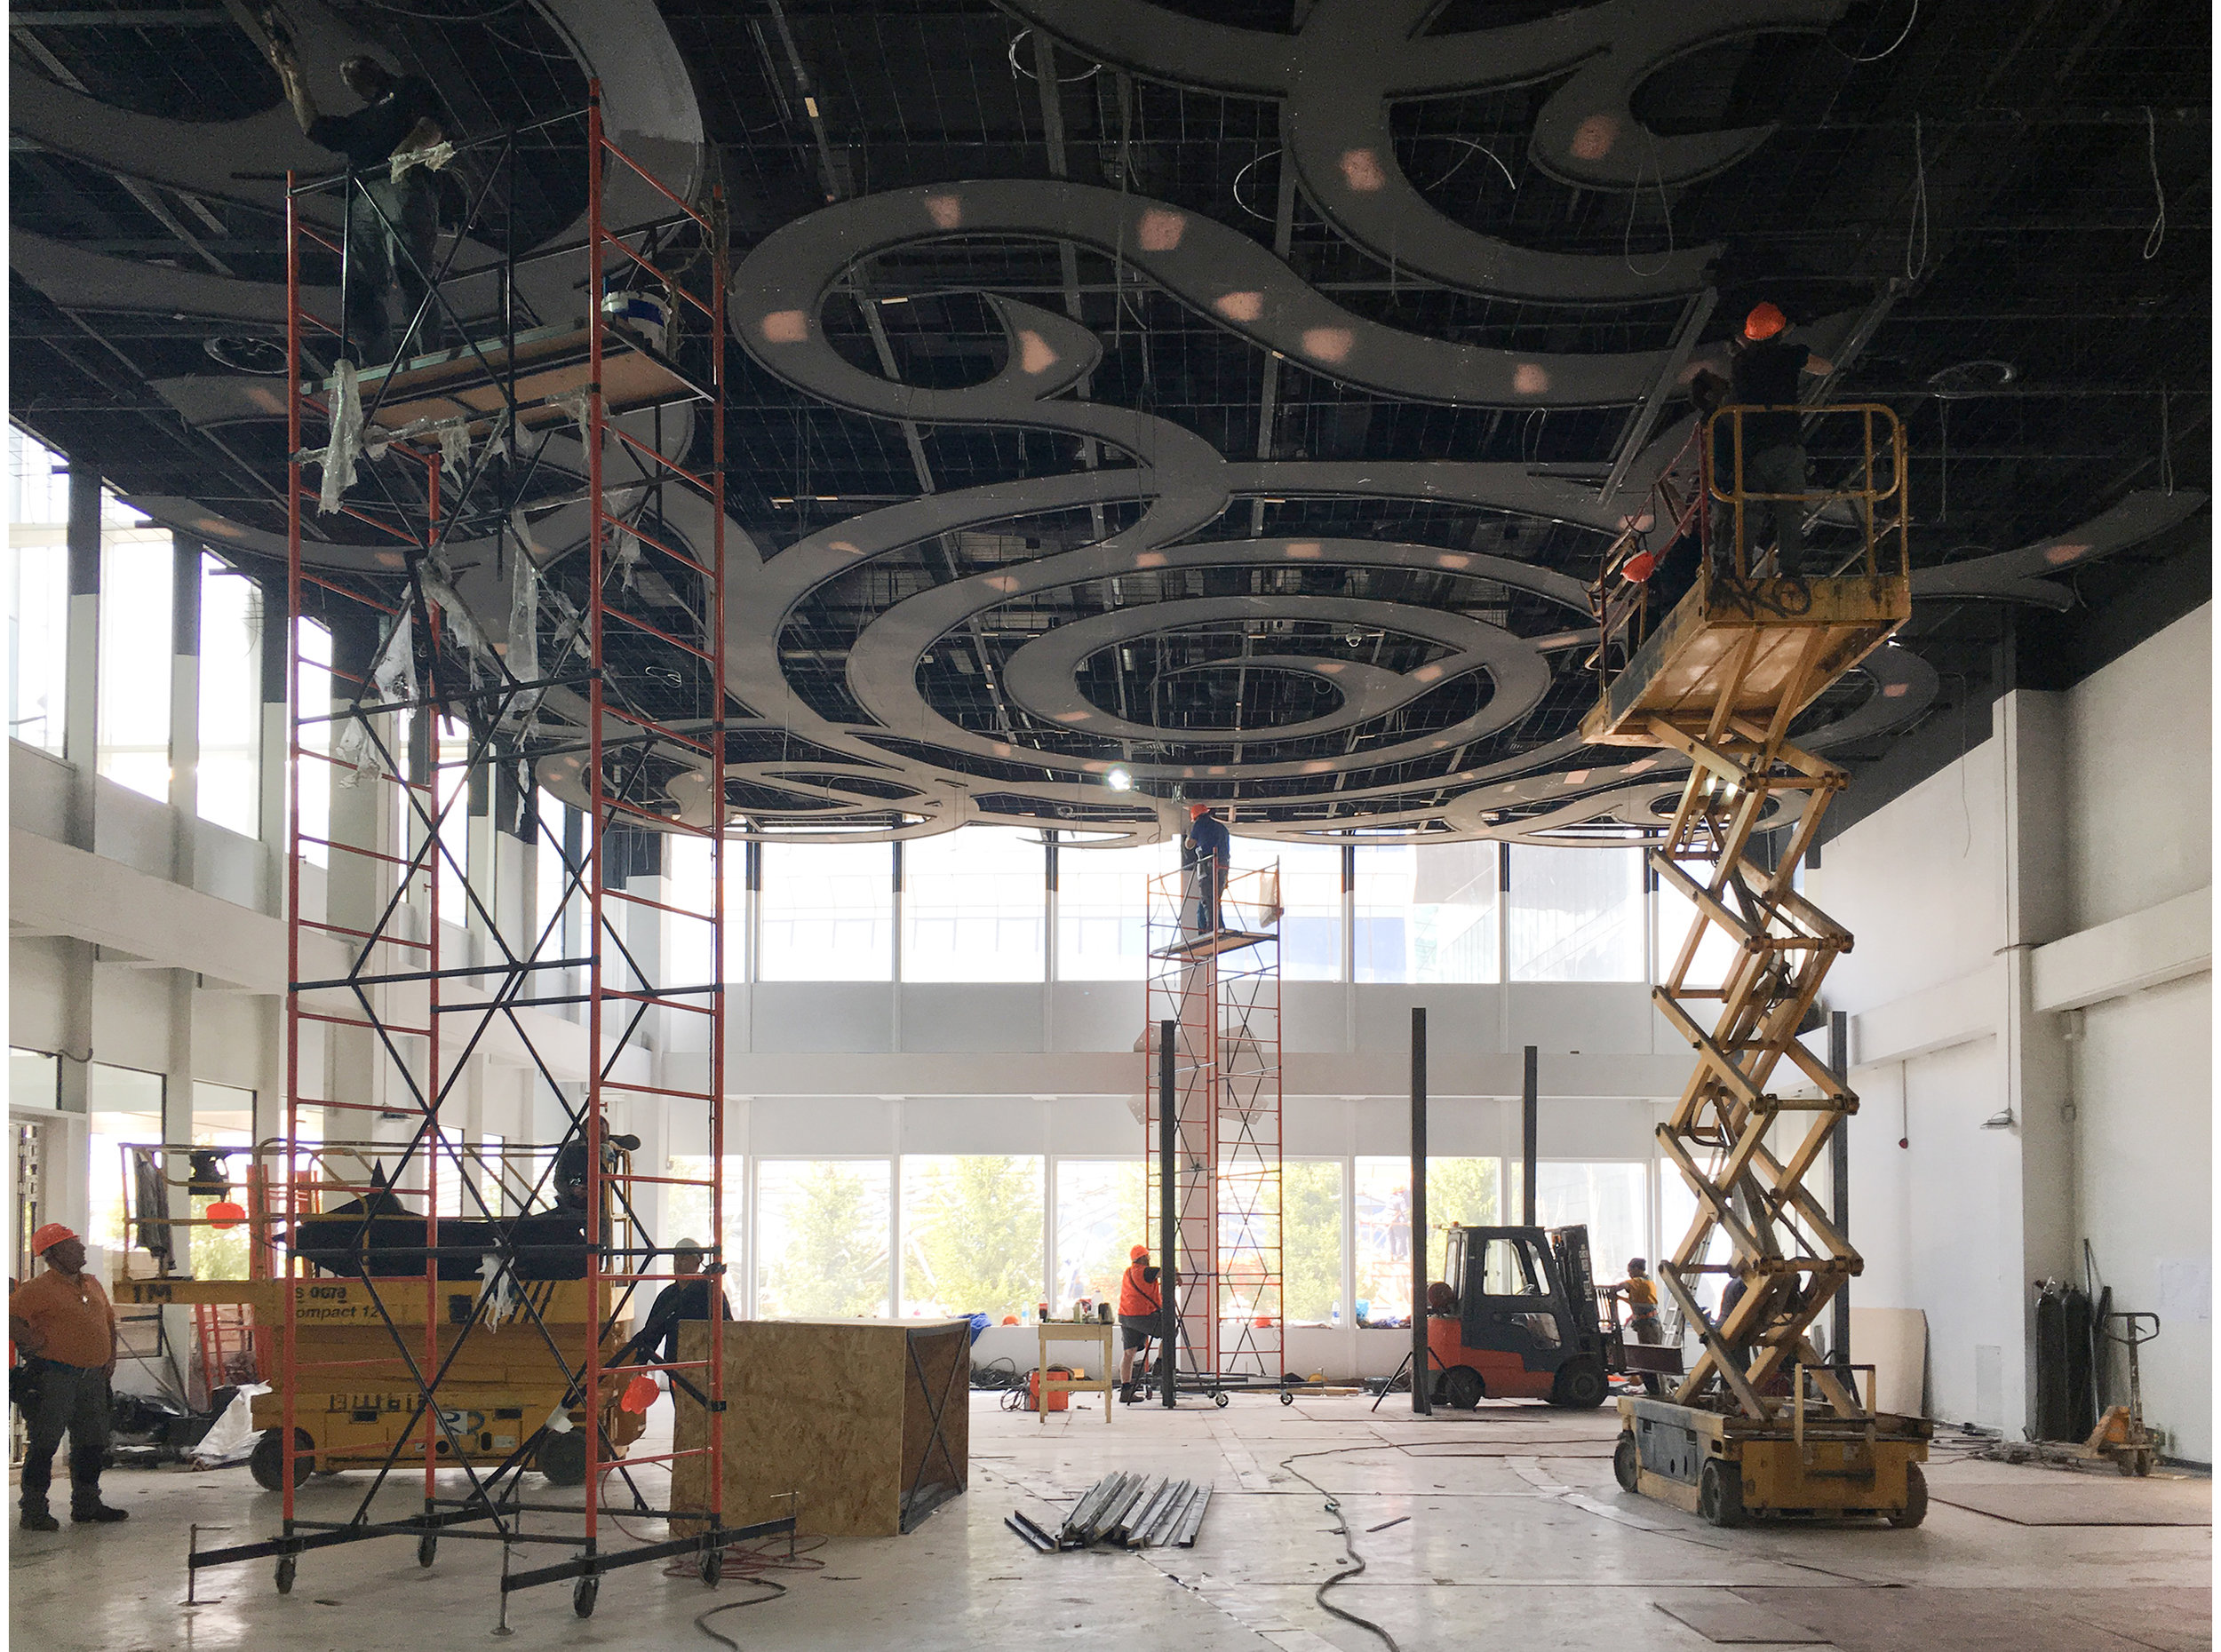 IRAN pavilion EXPO Astana-2017. Suspended ceiling construction